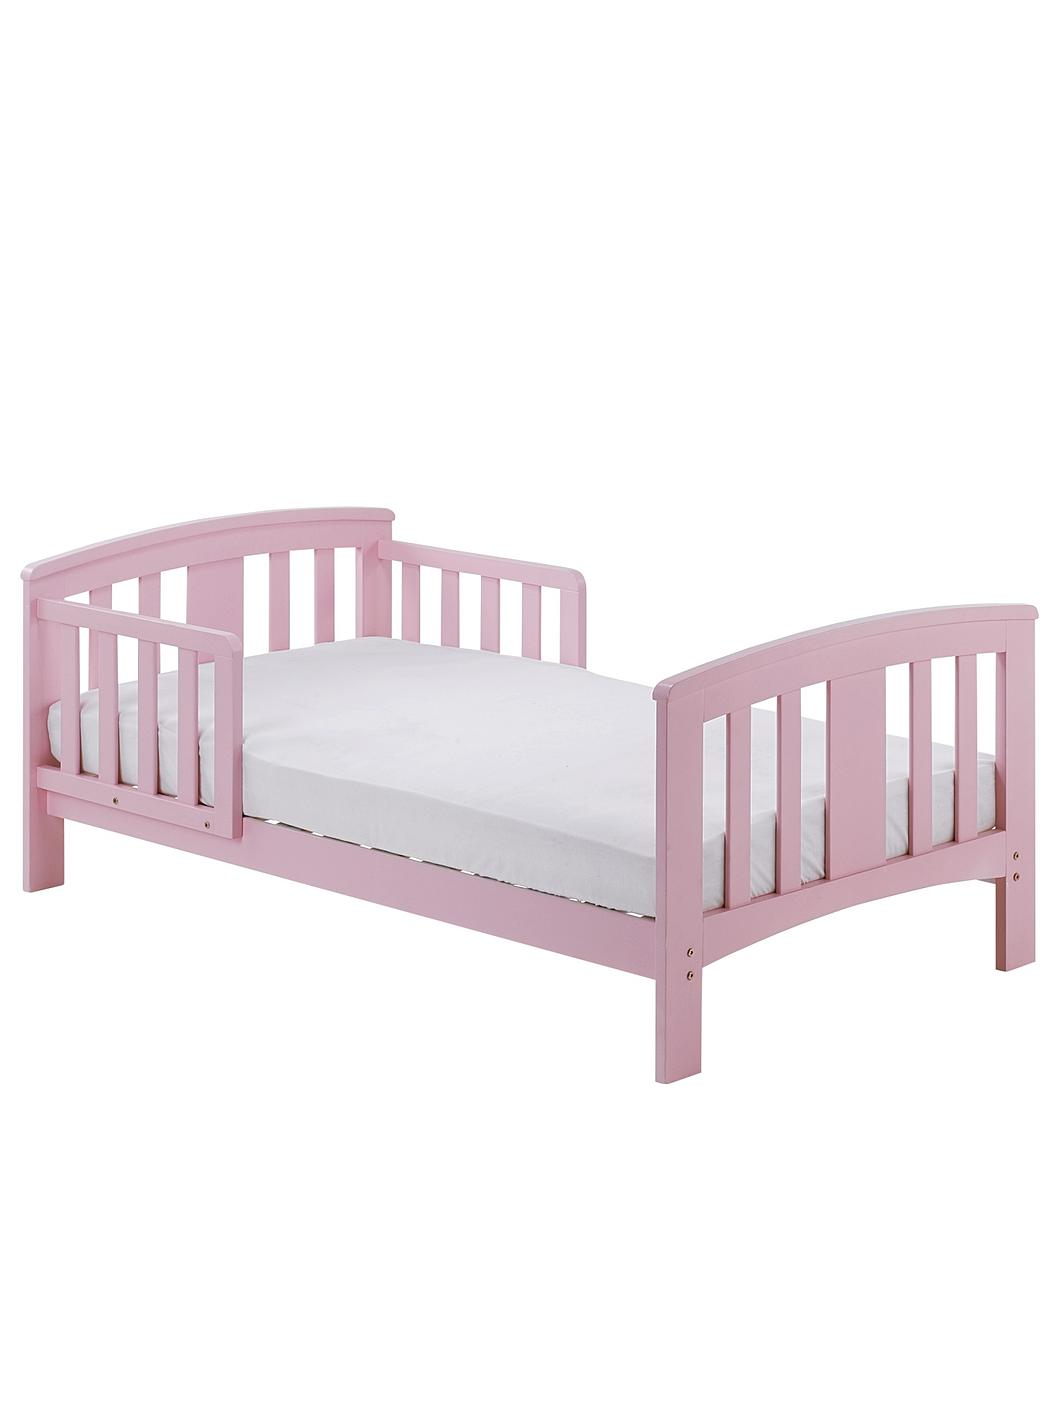 Ladybird Sweet Dreams Toddler Bed Pink1064x1416